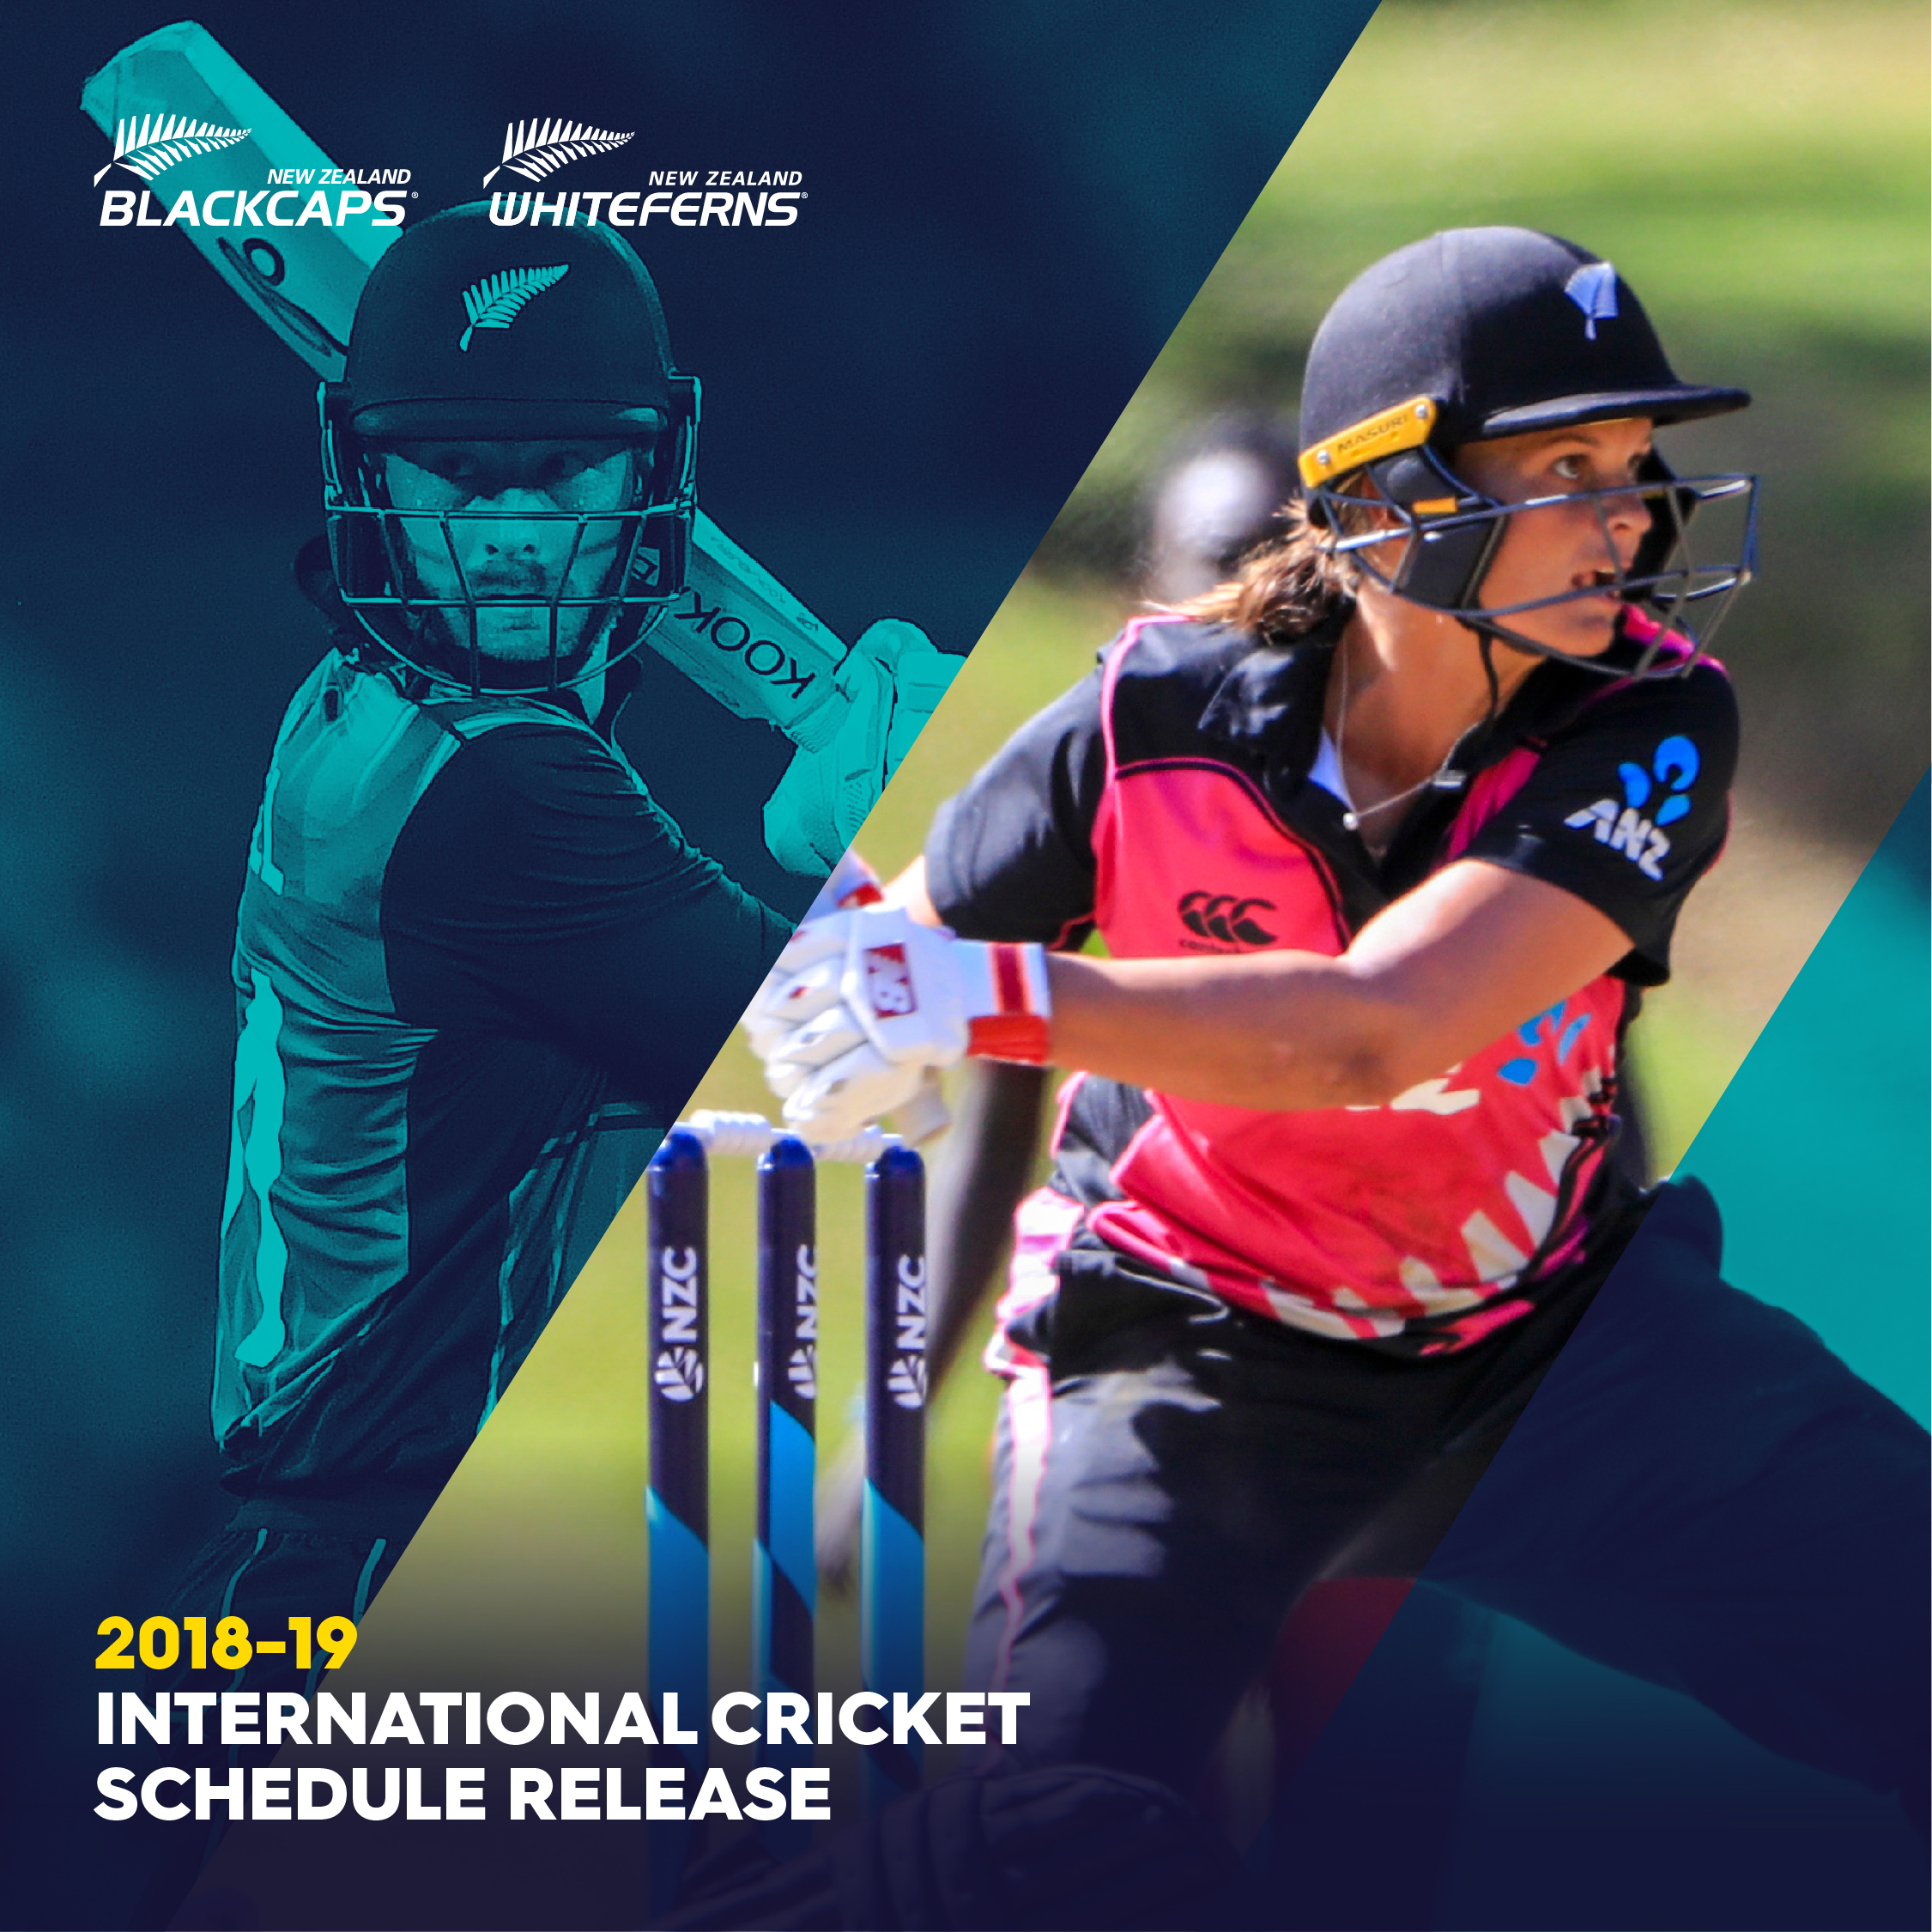 Blackcaps & White Ferns International Schedule 2018 – 19 season